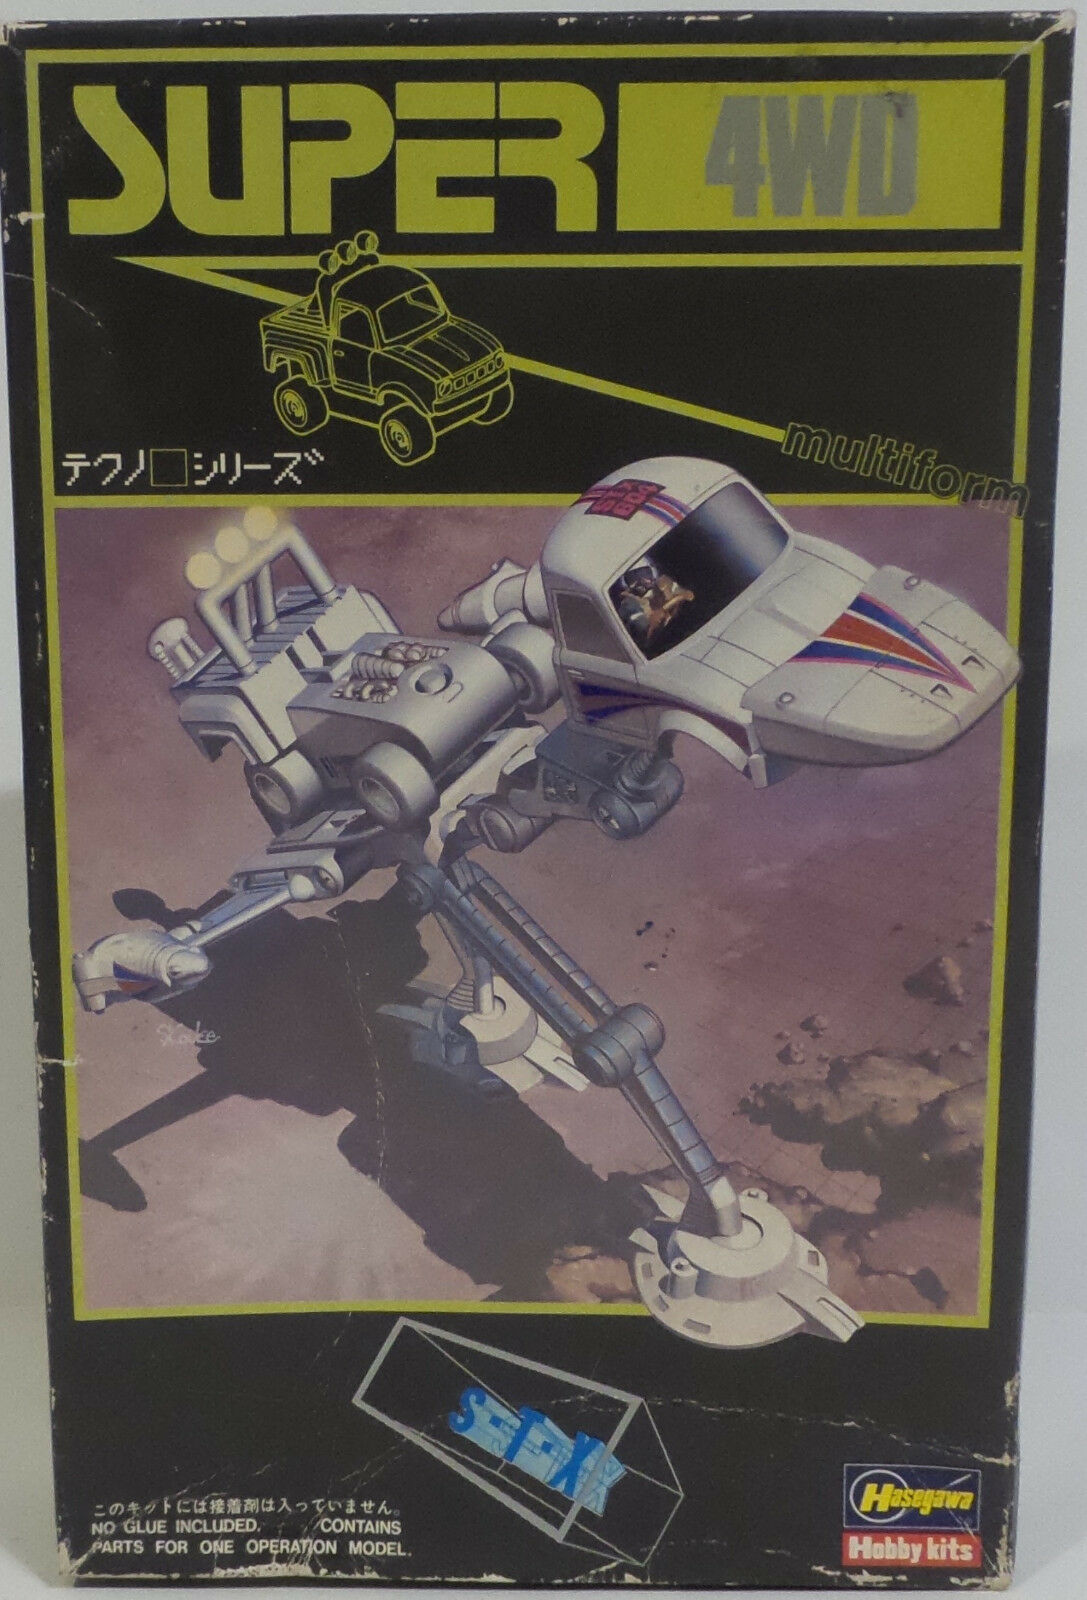 TRANSFORMERS   S.T.X SUPER 4WD MODEL KIT MADE BY HASEGAWA IN 1984 - VERY RARE